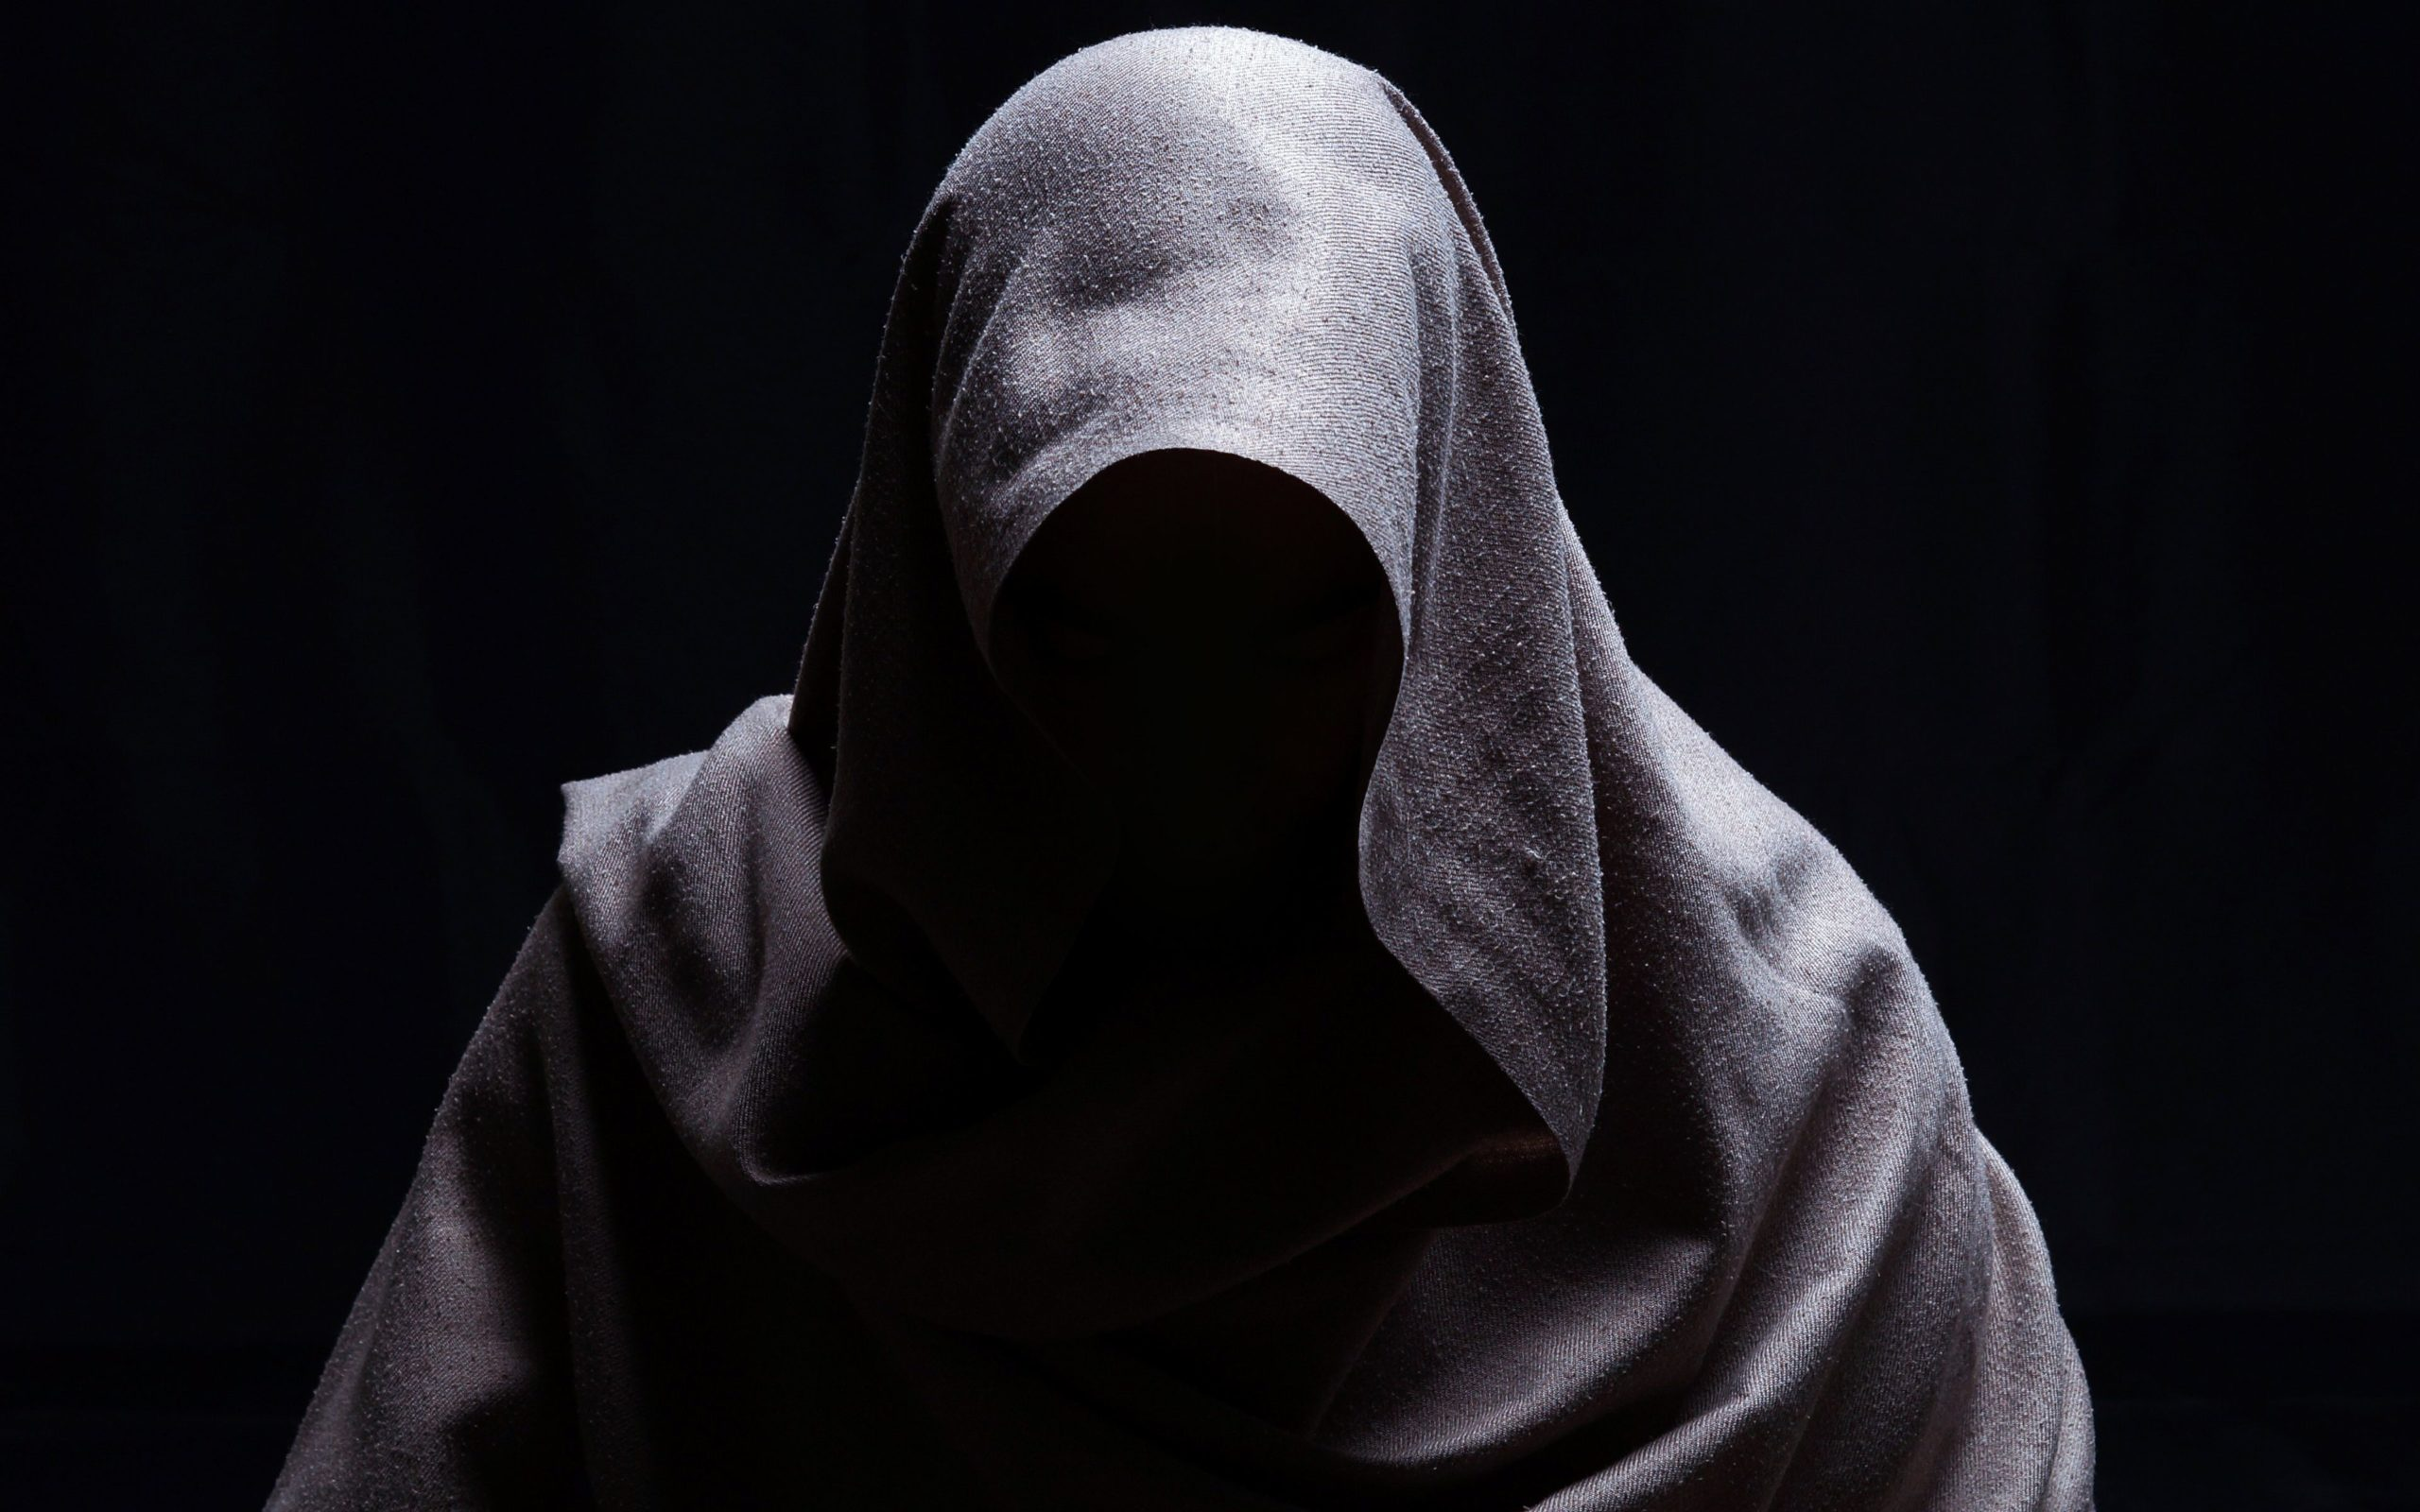 anonymous profile picture hd